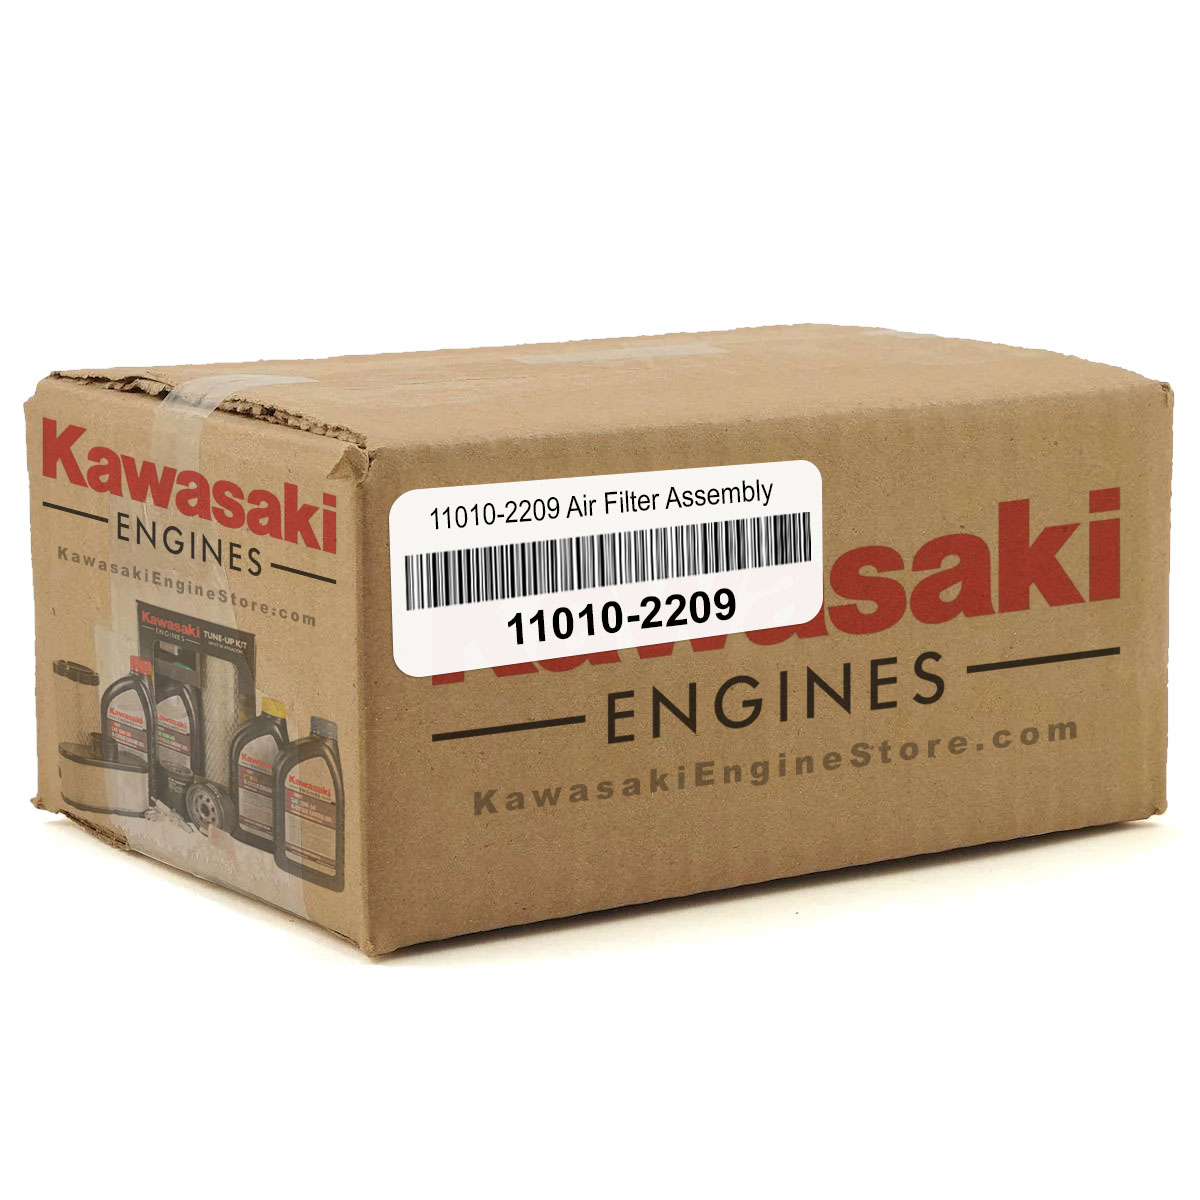 Kawasaki 11010-2209 Air Filter Assembly